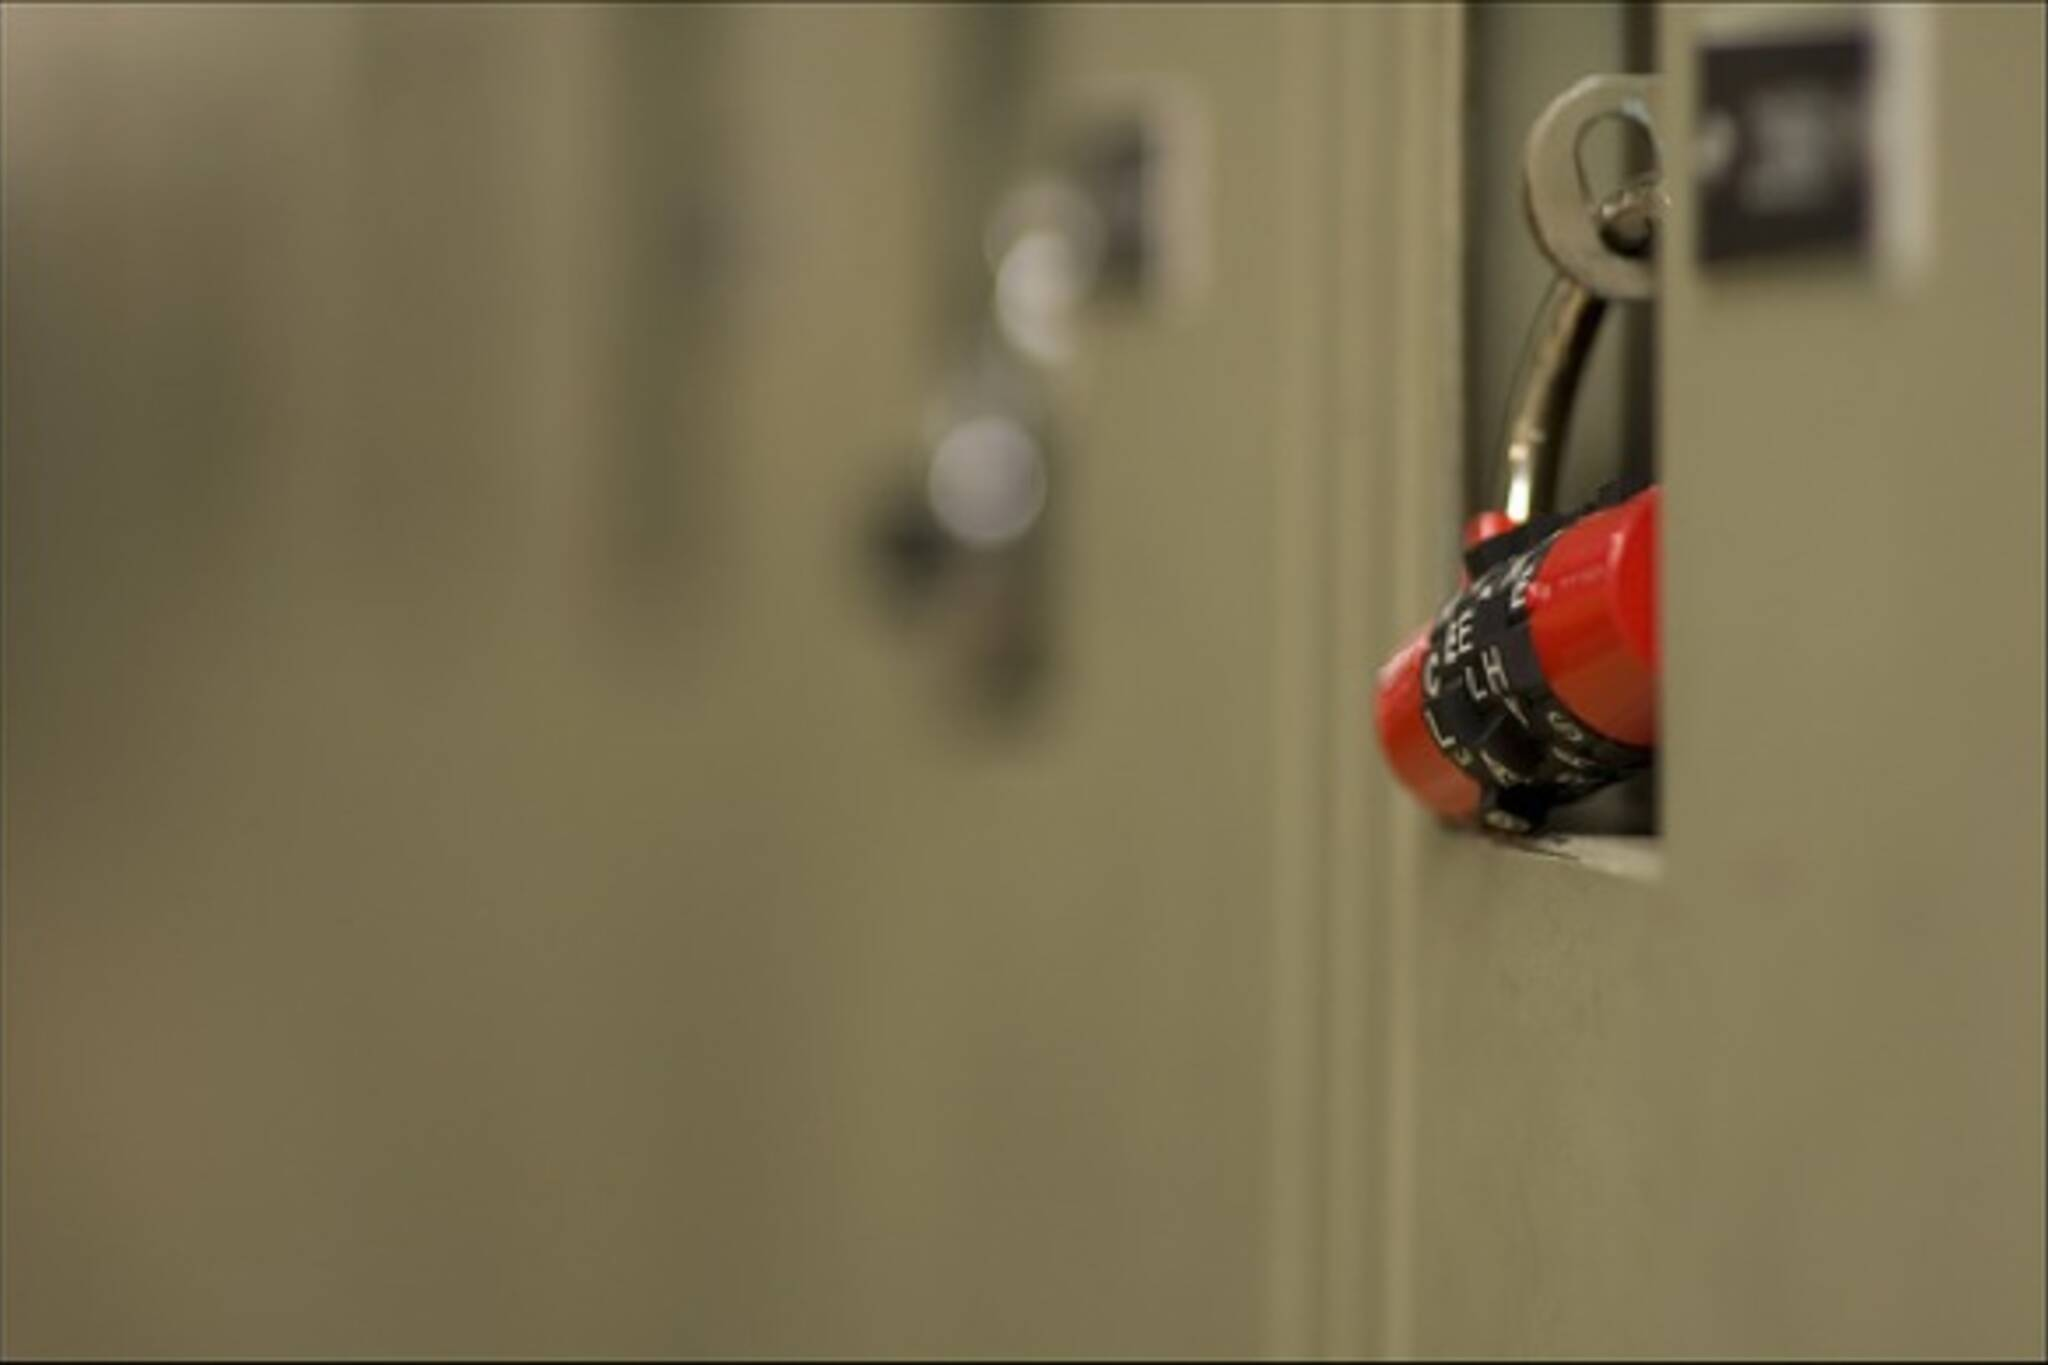 Are Toronto schools safe for students?